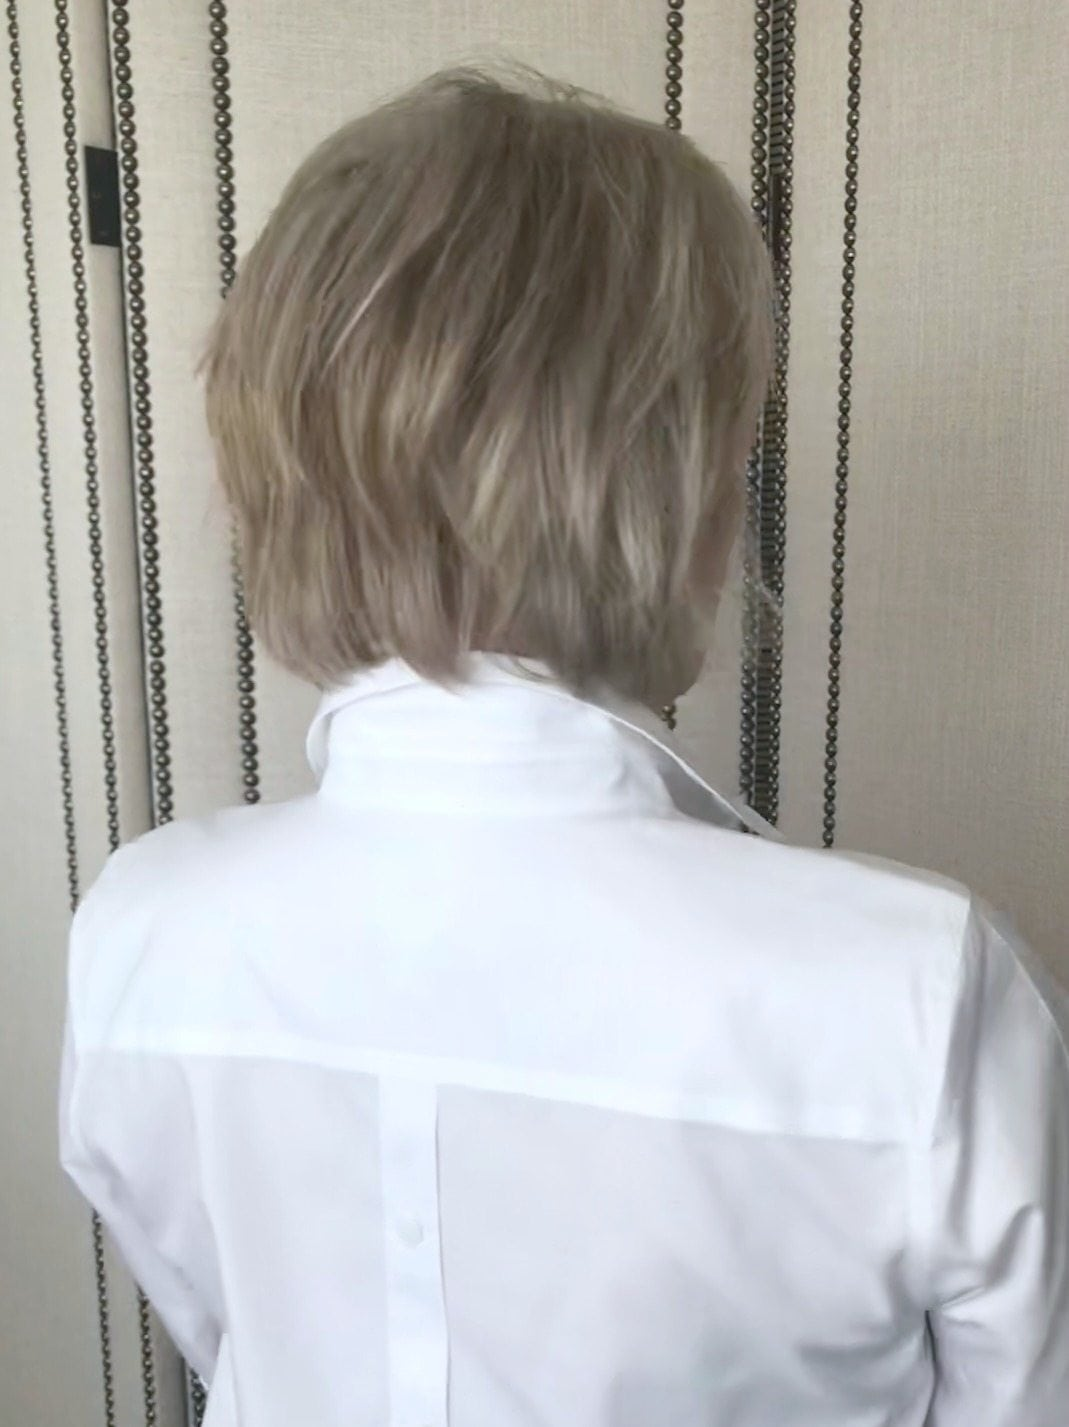 How To Pop A Collar And Keep It Up A Well Styled Life